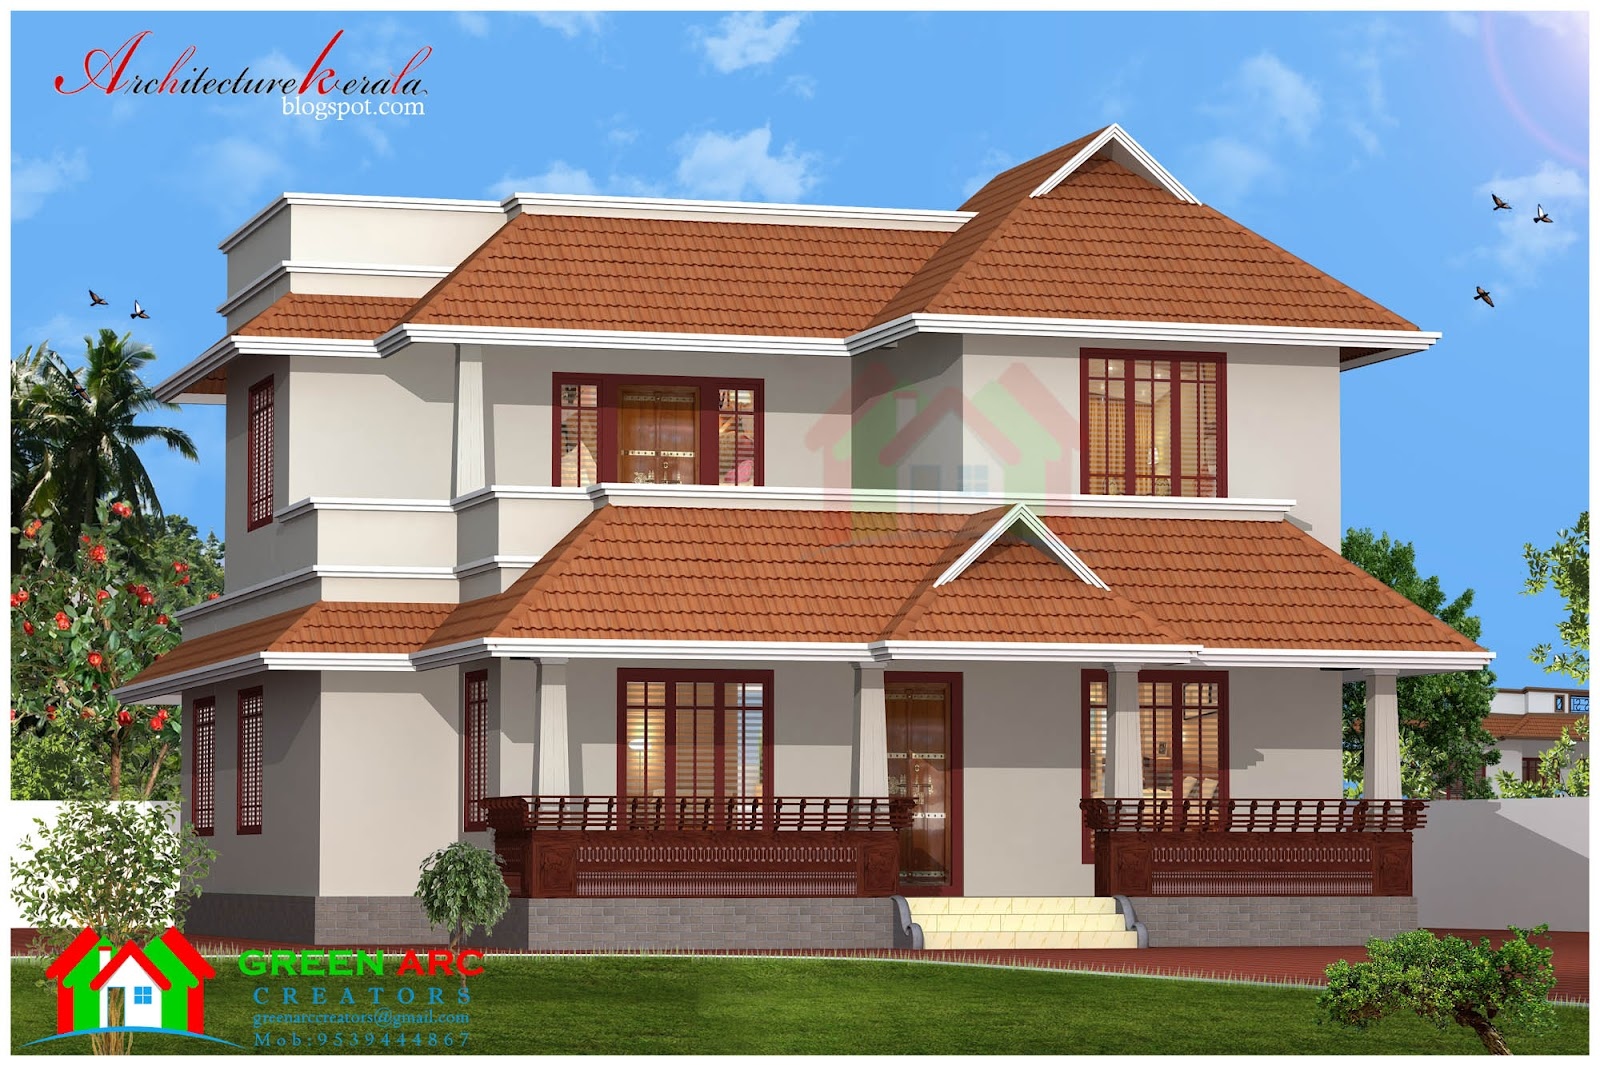 Architecture kerala traditional style kerala house plan for Home designs traditional